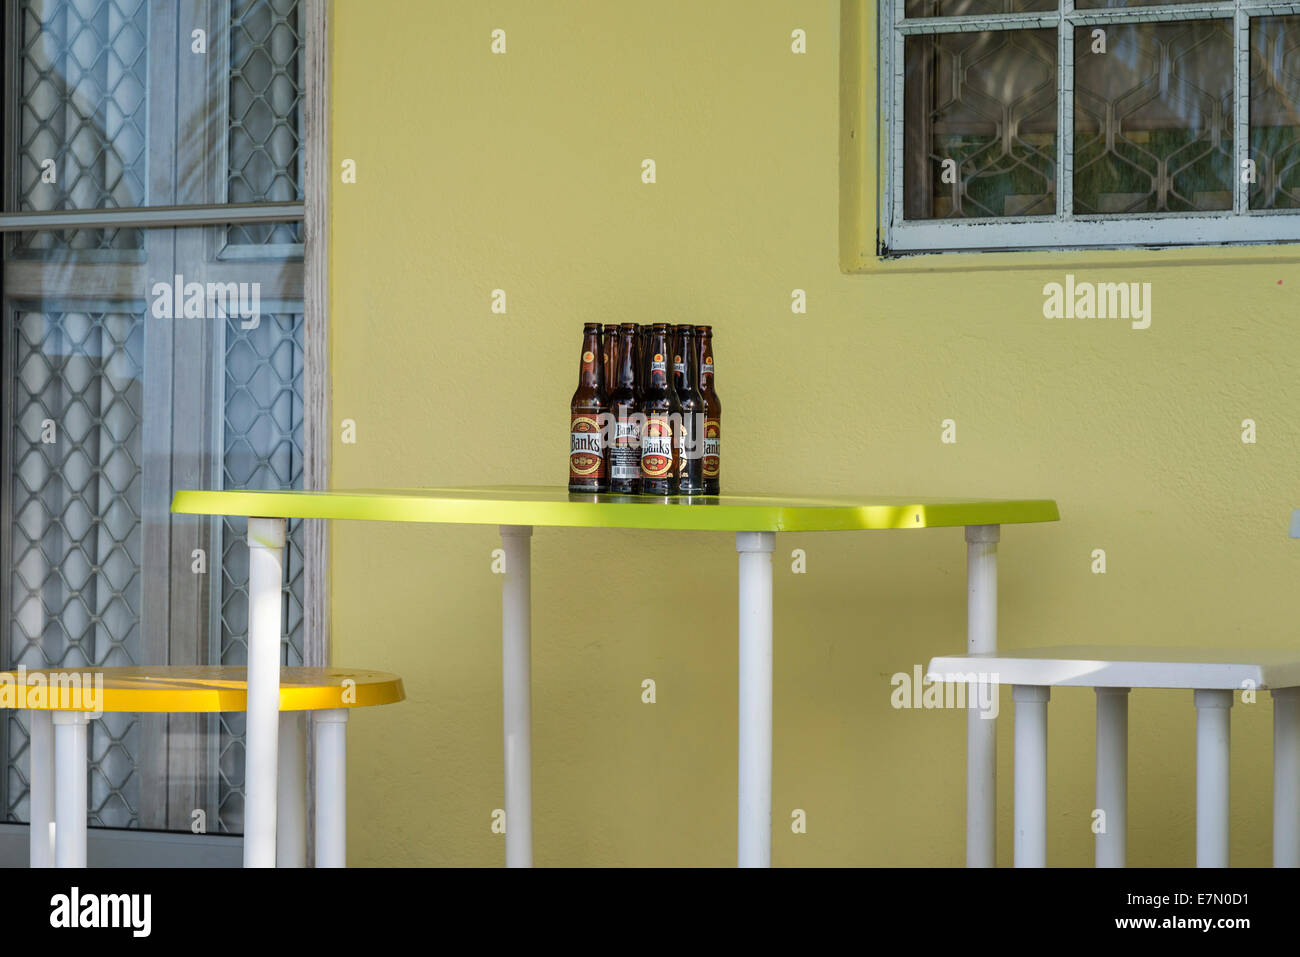 Empty bottles of Banks Beer grouped together on a table from the night before. EDITORIAL USE ONLY - Stock Image